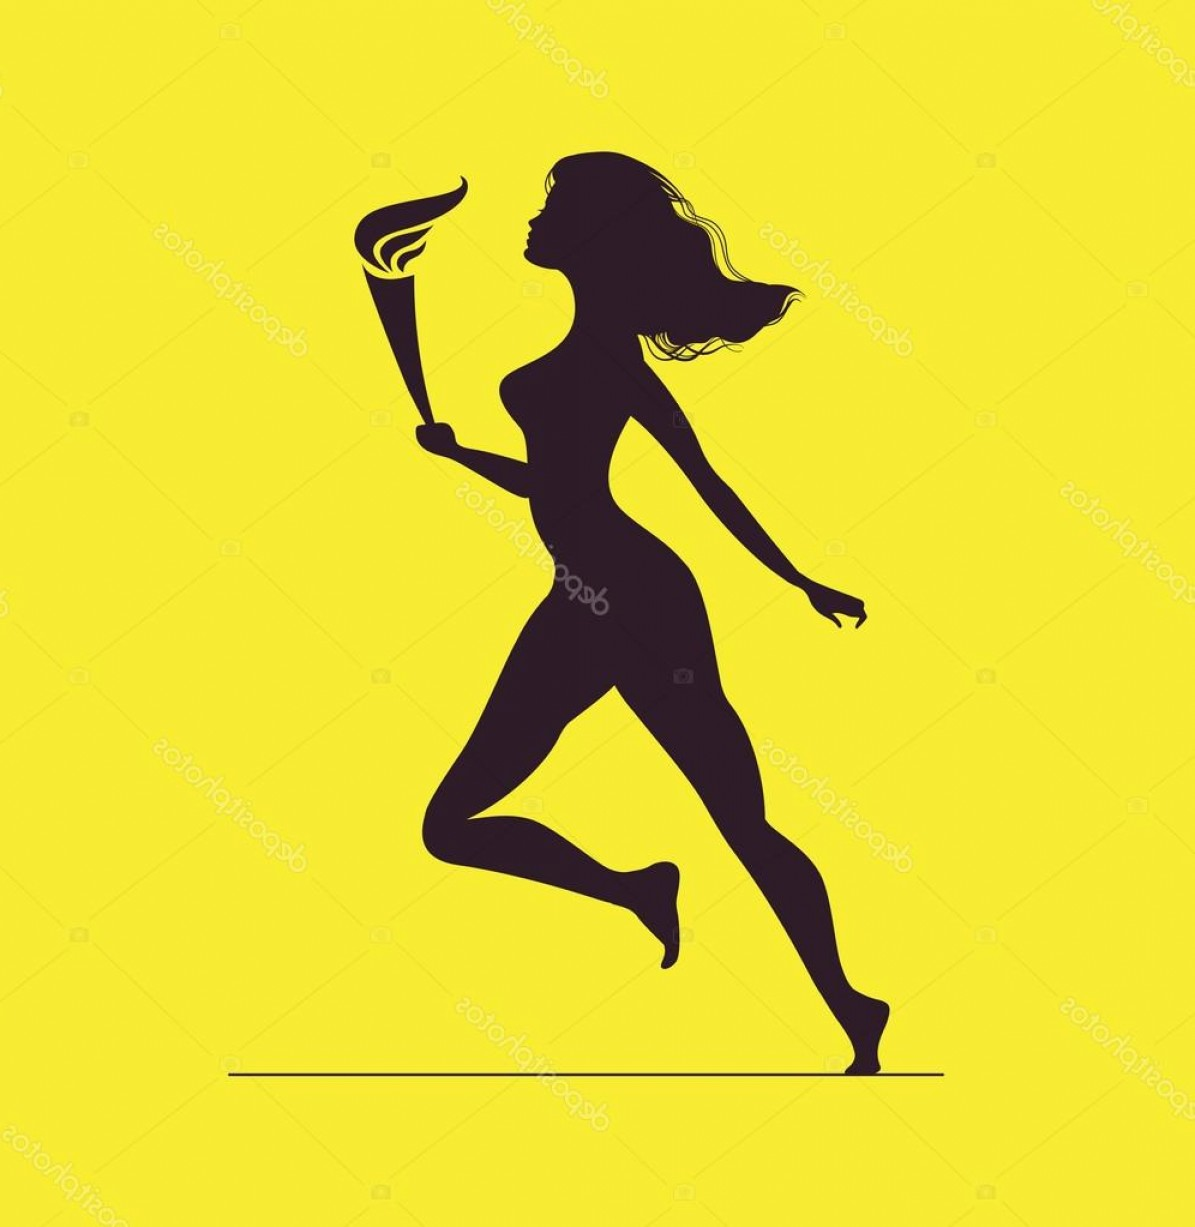 Athlete Vectors: Stock Illustration Torchbearer Athlete With Olympic Flame